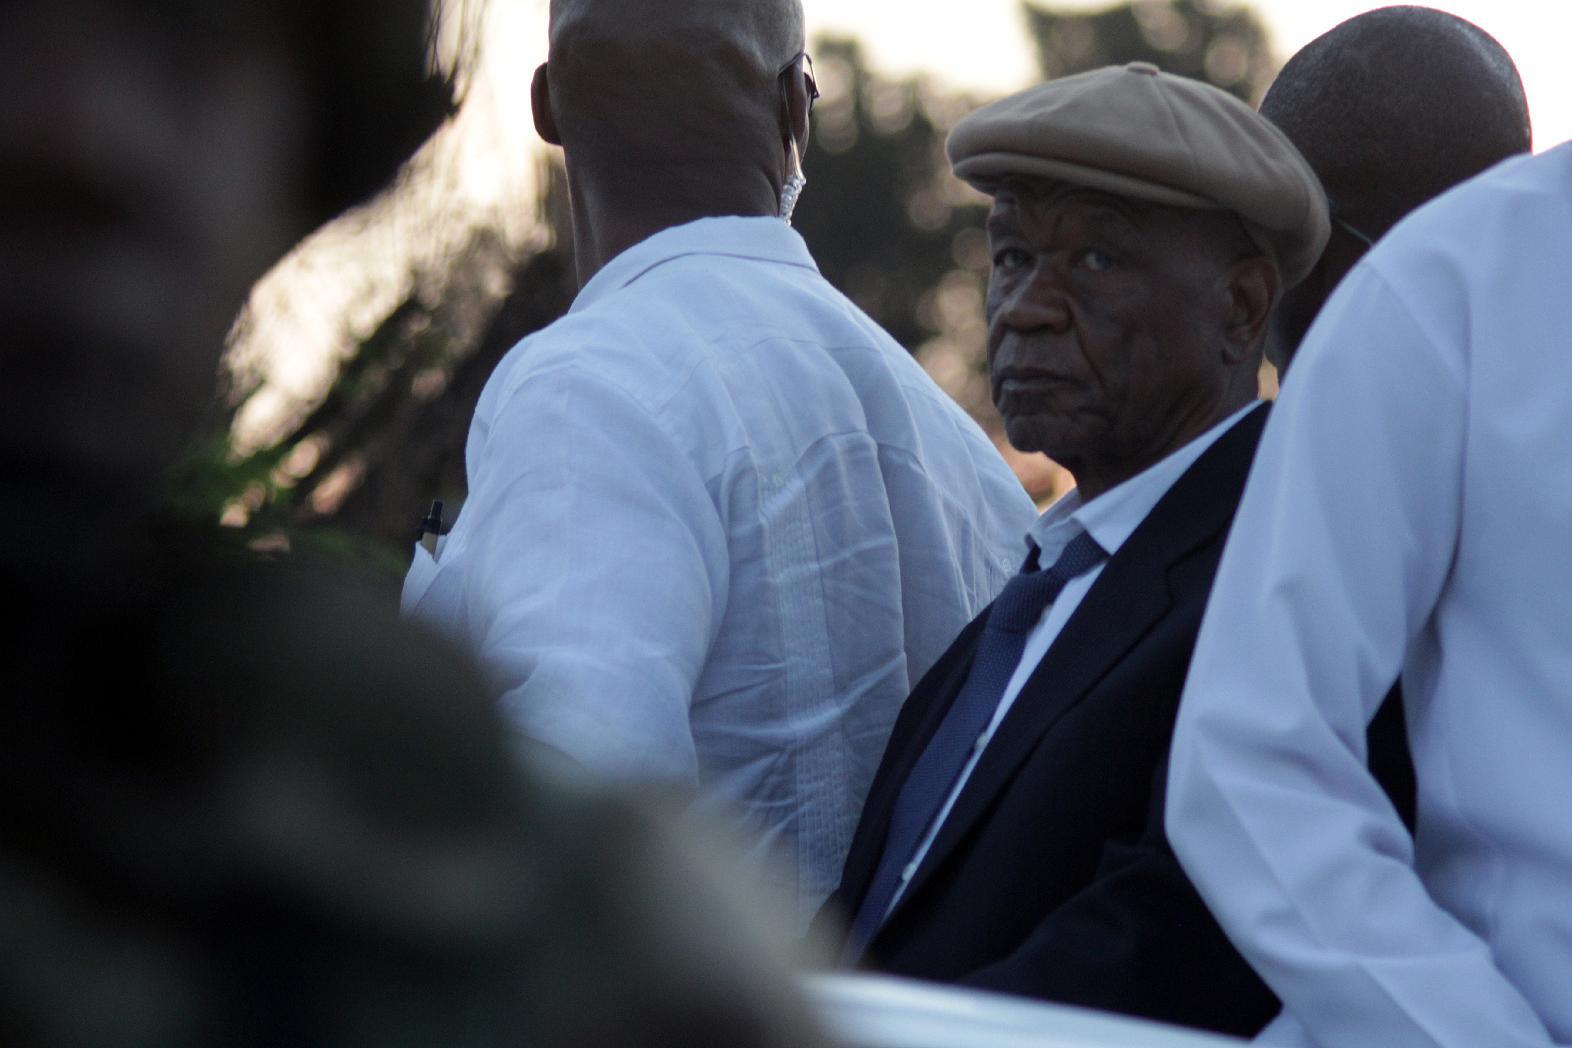 Lesotho Prime Minister Tom Thabane is flanked by his bodyguards as he arrives at the Maseru border gate under heavy security on September 16, 2014 (AFP Photo/Hlompho Letsielo)